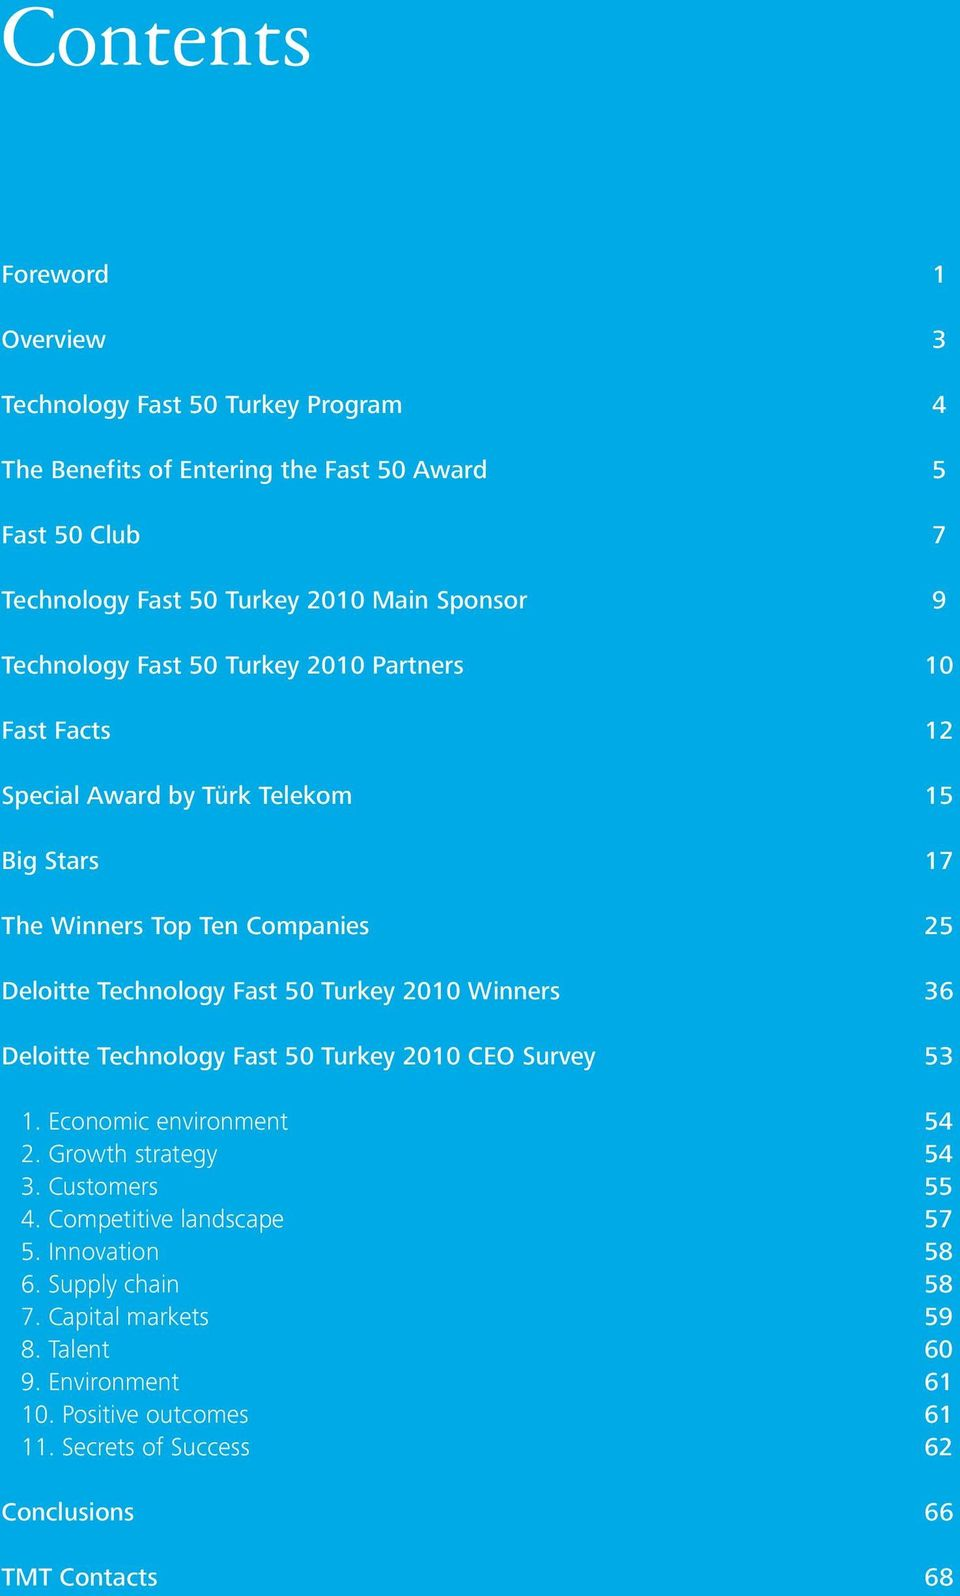 Fast 50 Turkey 2010 Winners 36 Deloitte Technology Fast 50 Turkey 2010 CEO Survey 53 1. Economic environment 54 2. Growth strategy 54 3. Customers 55 4.